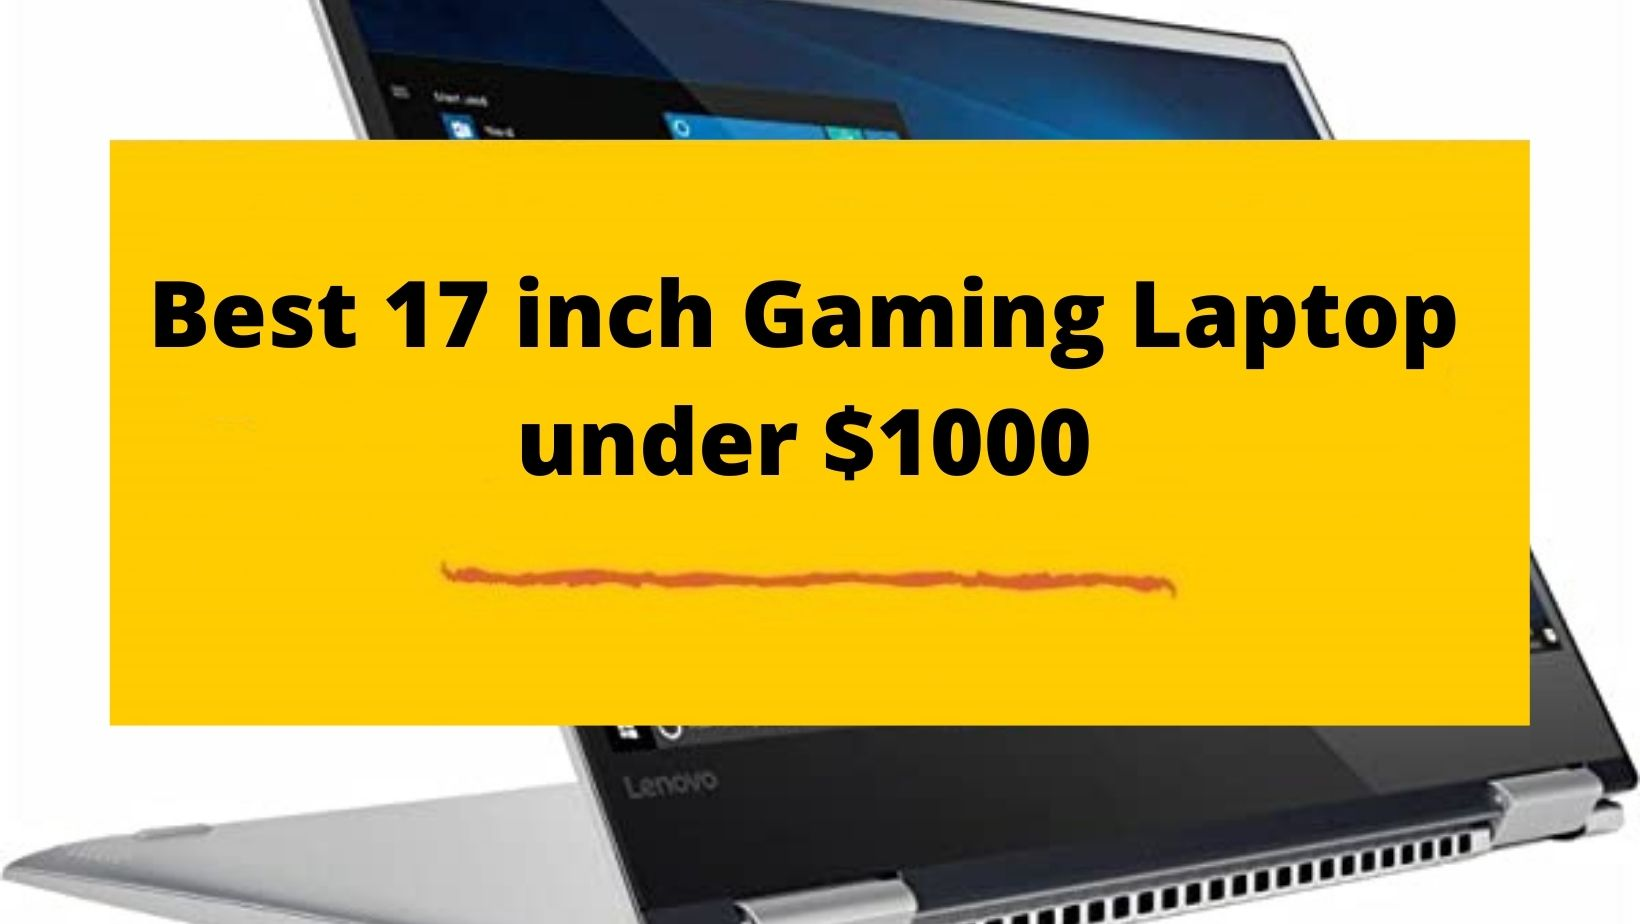 Top-rated gaming laptops